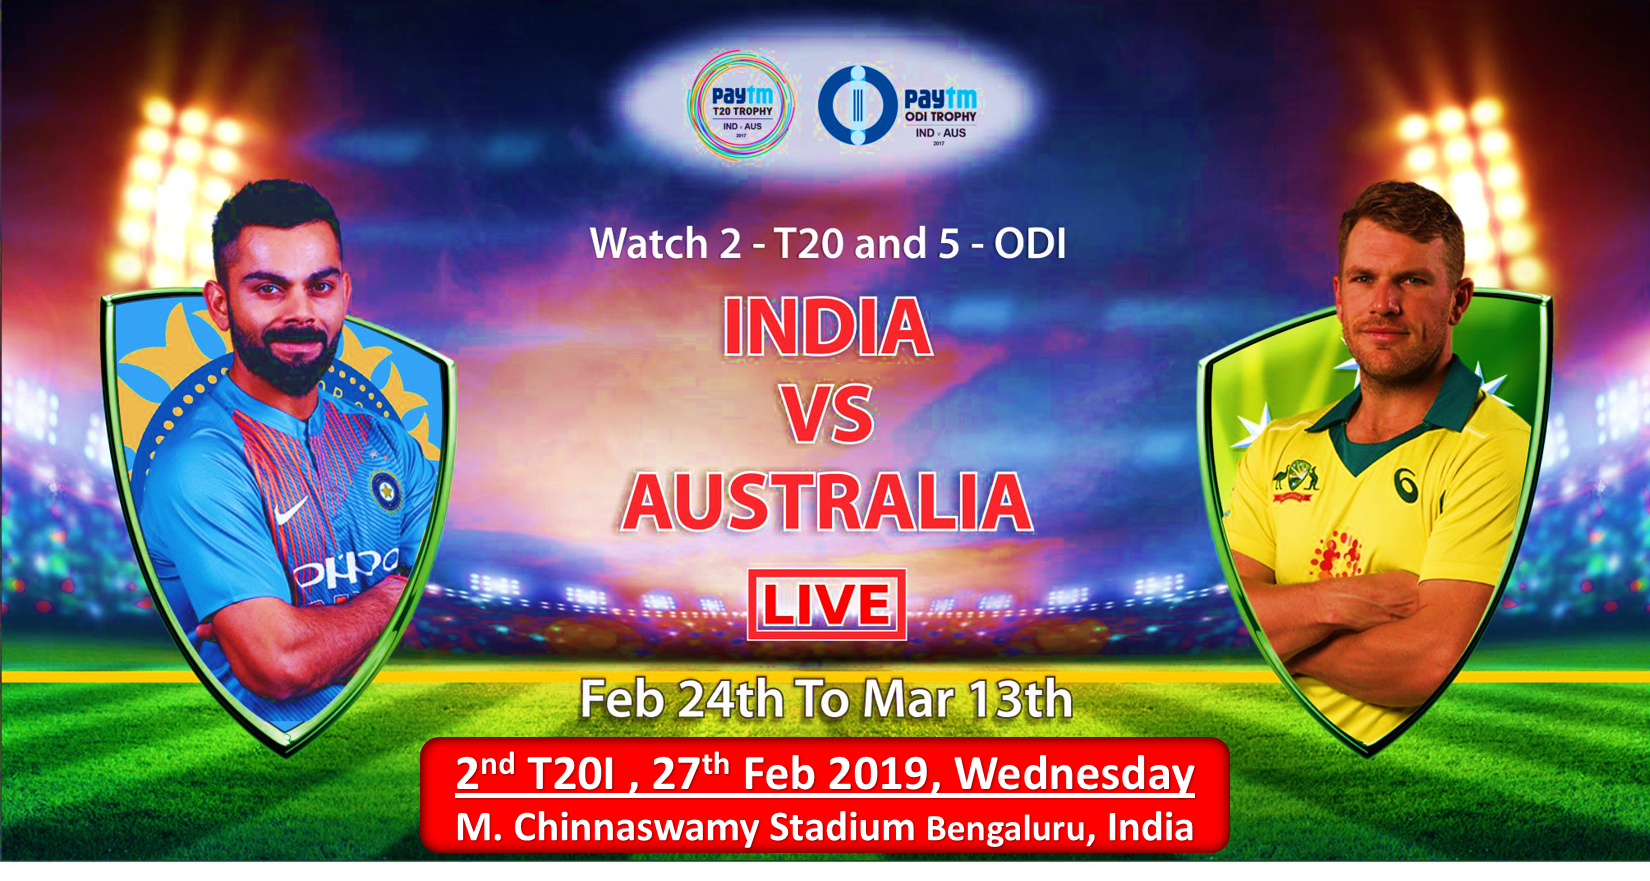 India Vs Australia Paytm Series Is Streaming Live On Hotstar